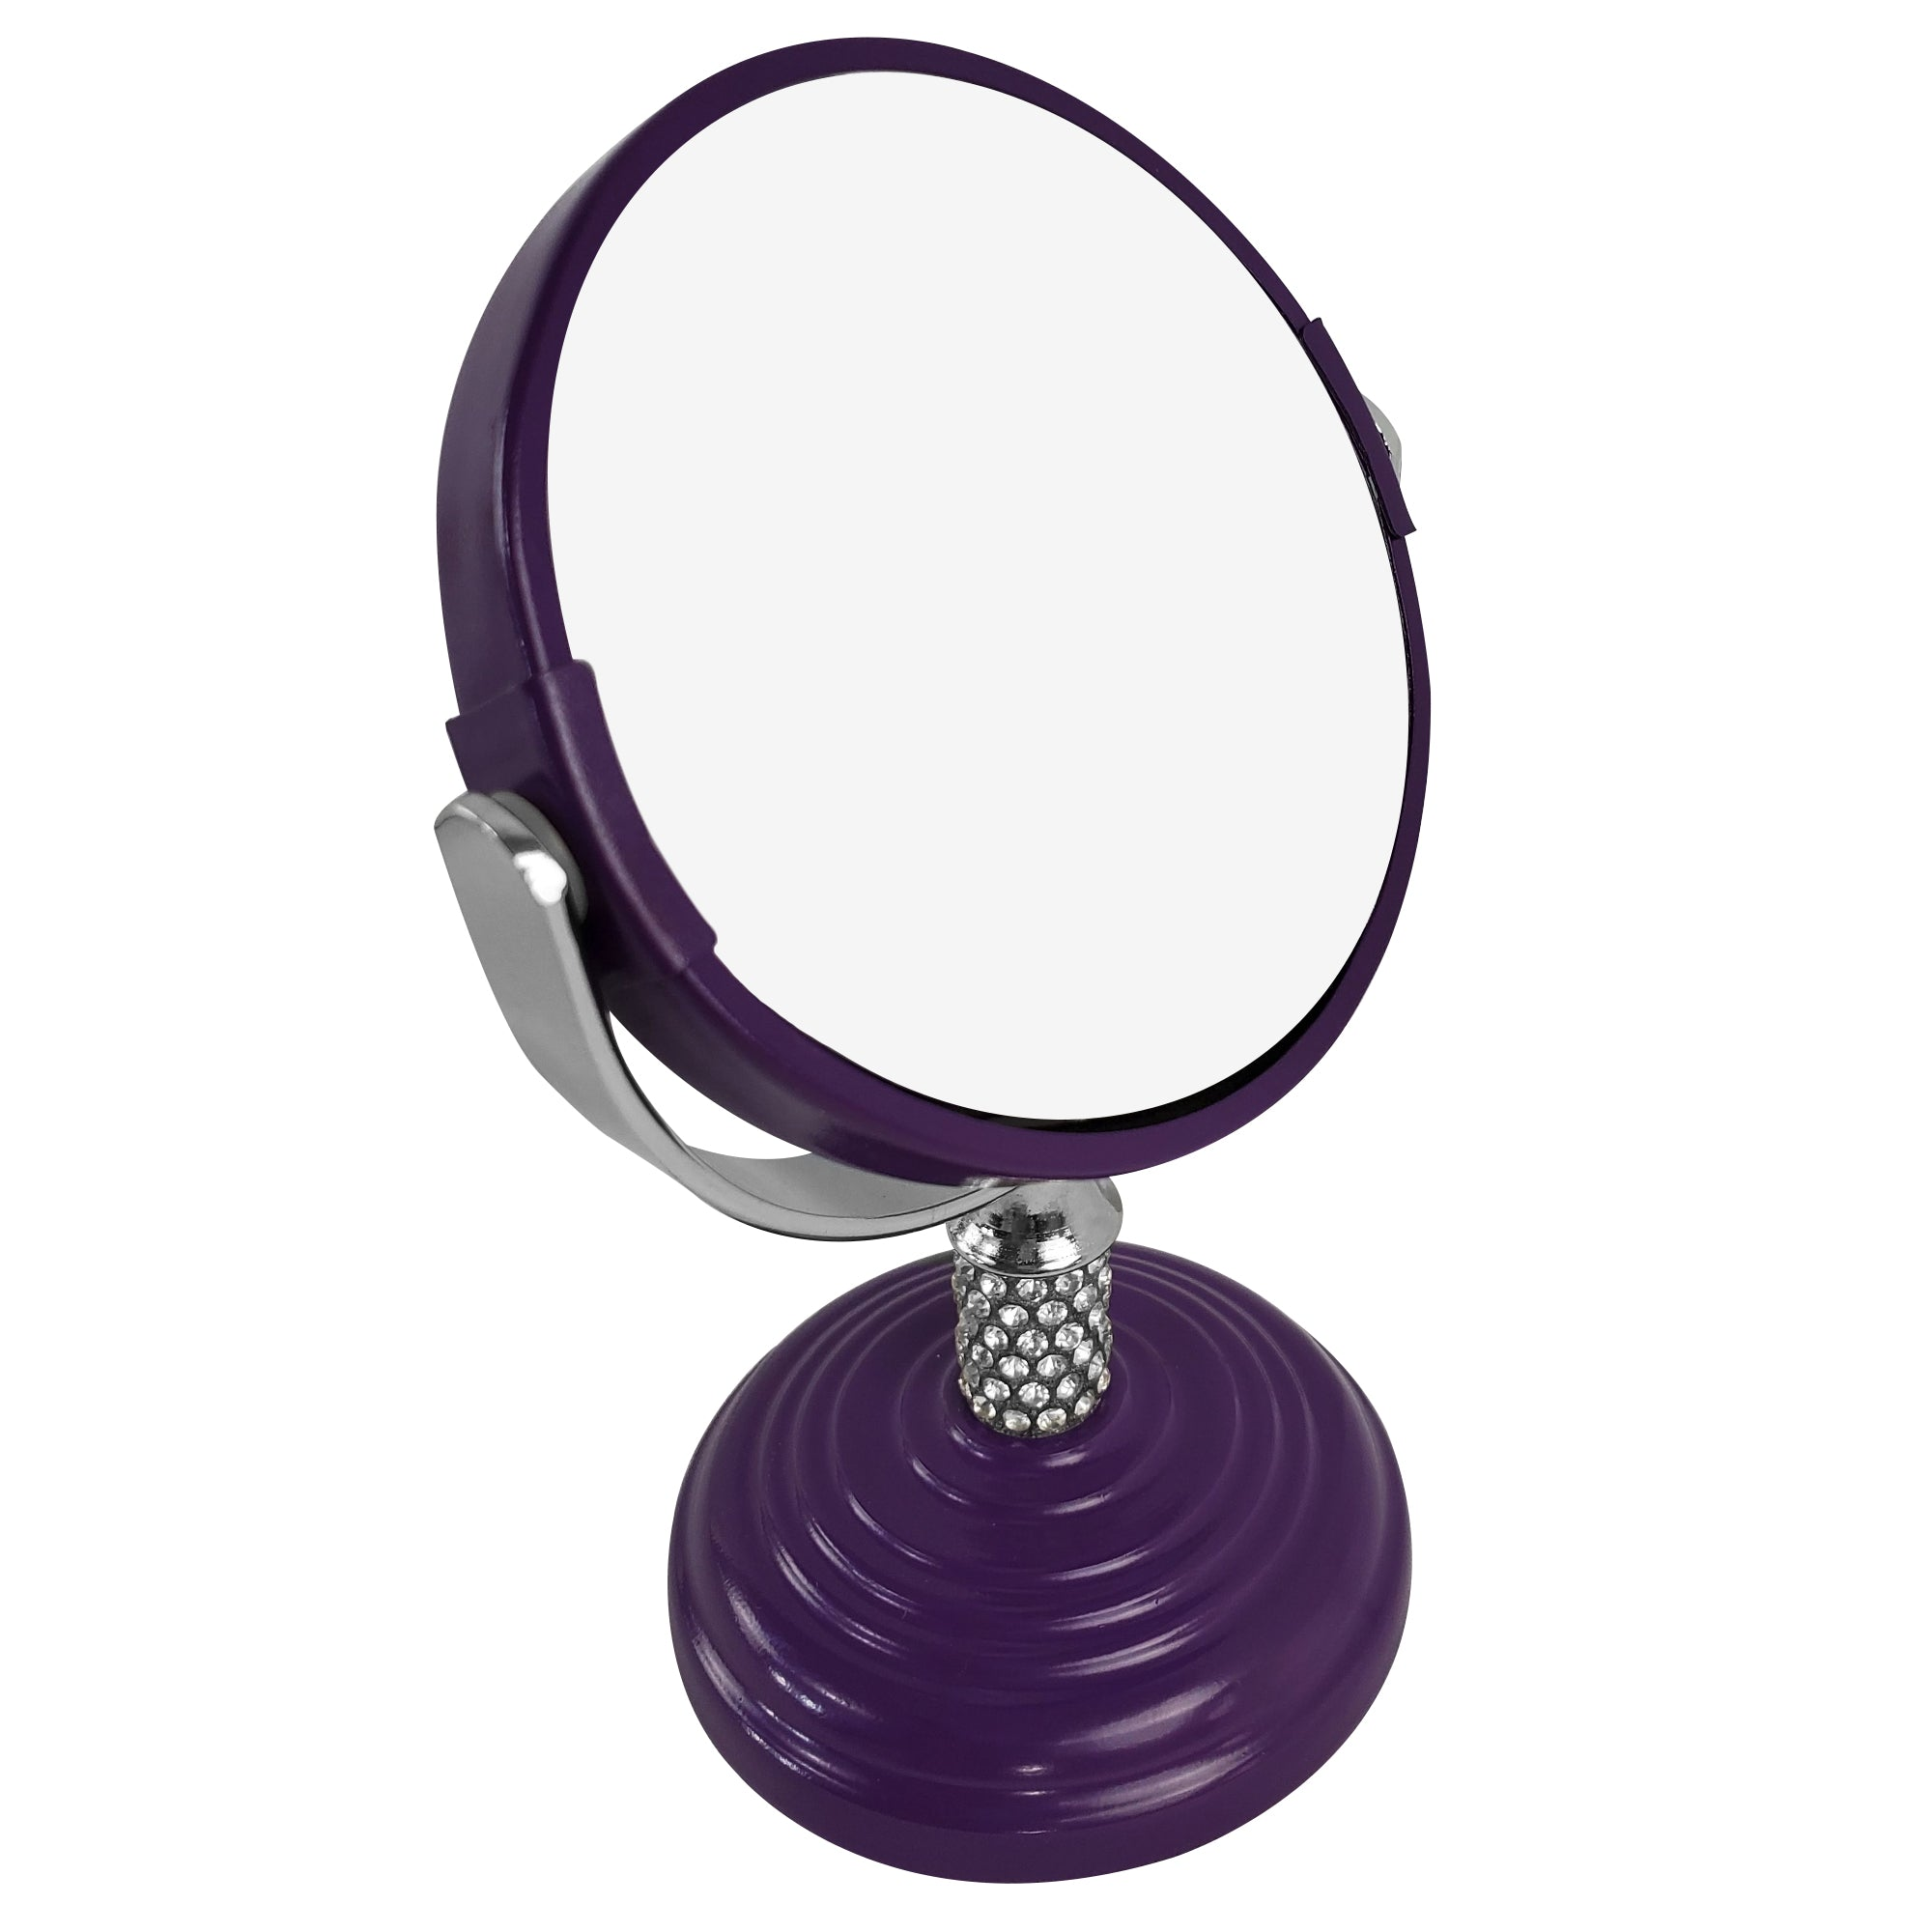 Rucci Mini Soft Touch Vanity Mirror with 4x Magnification Crystal Neck Design